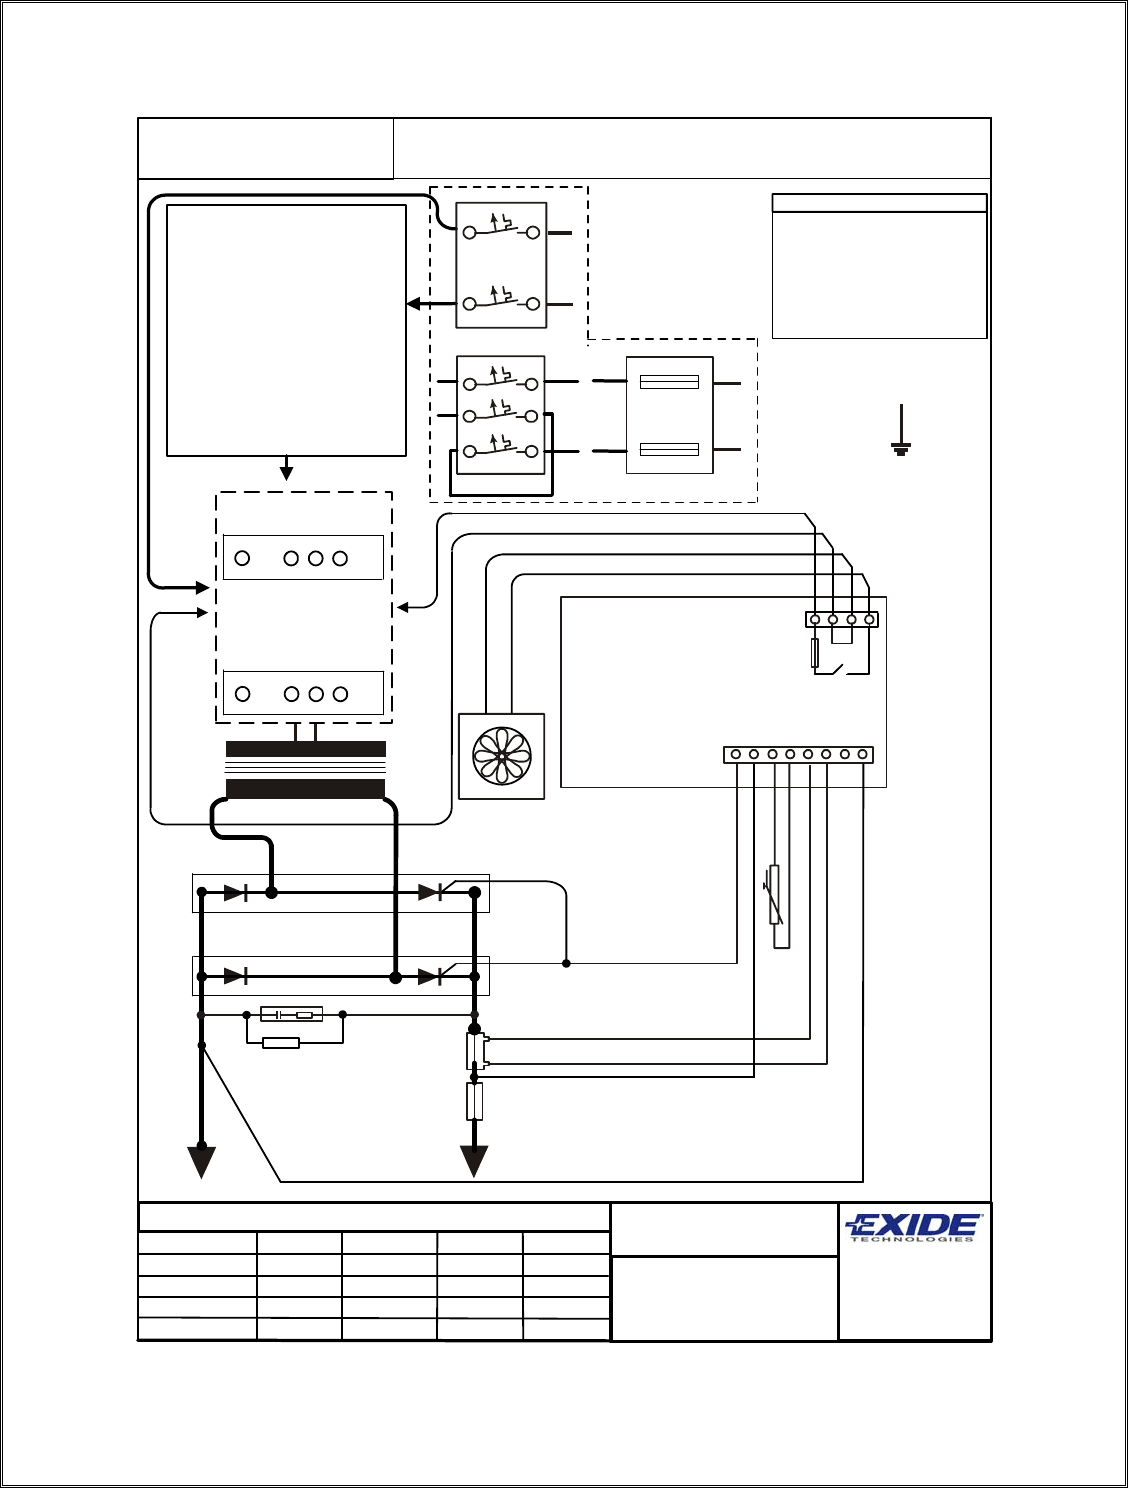 Page 18 of Exide Automobile Battery Charger DEC200 User